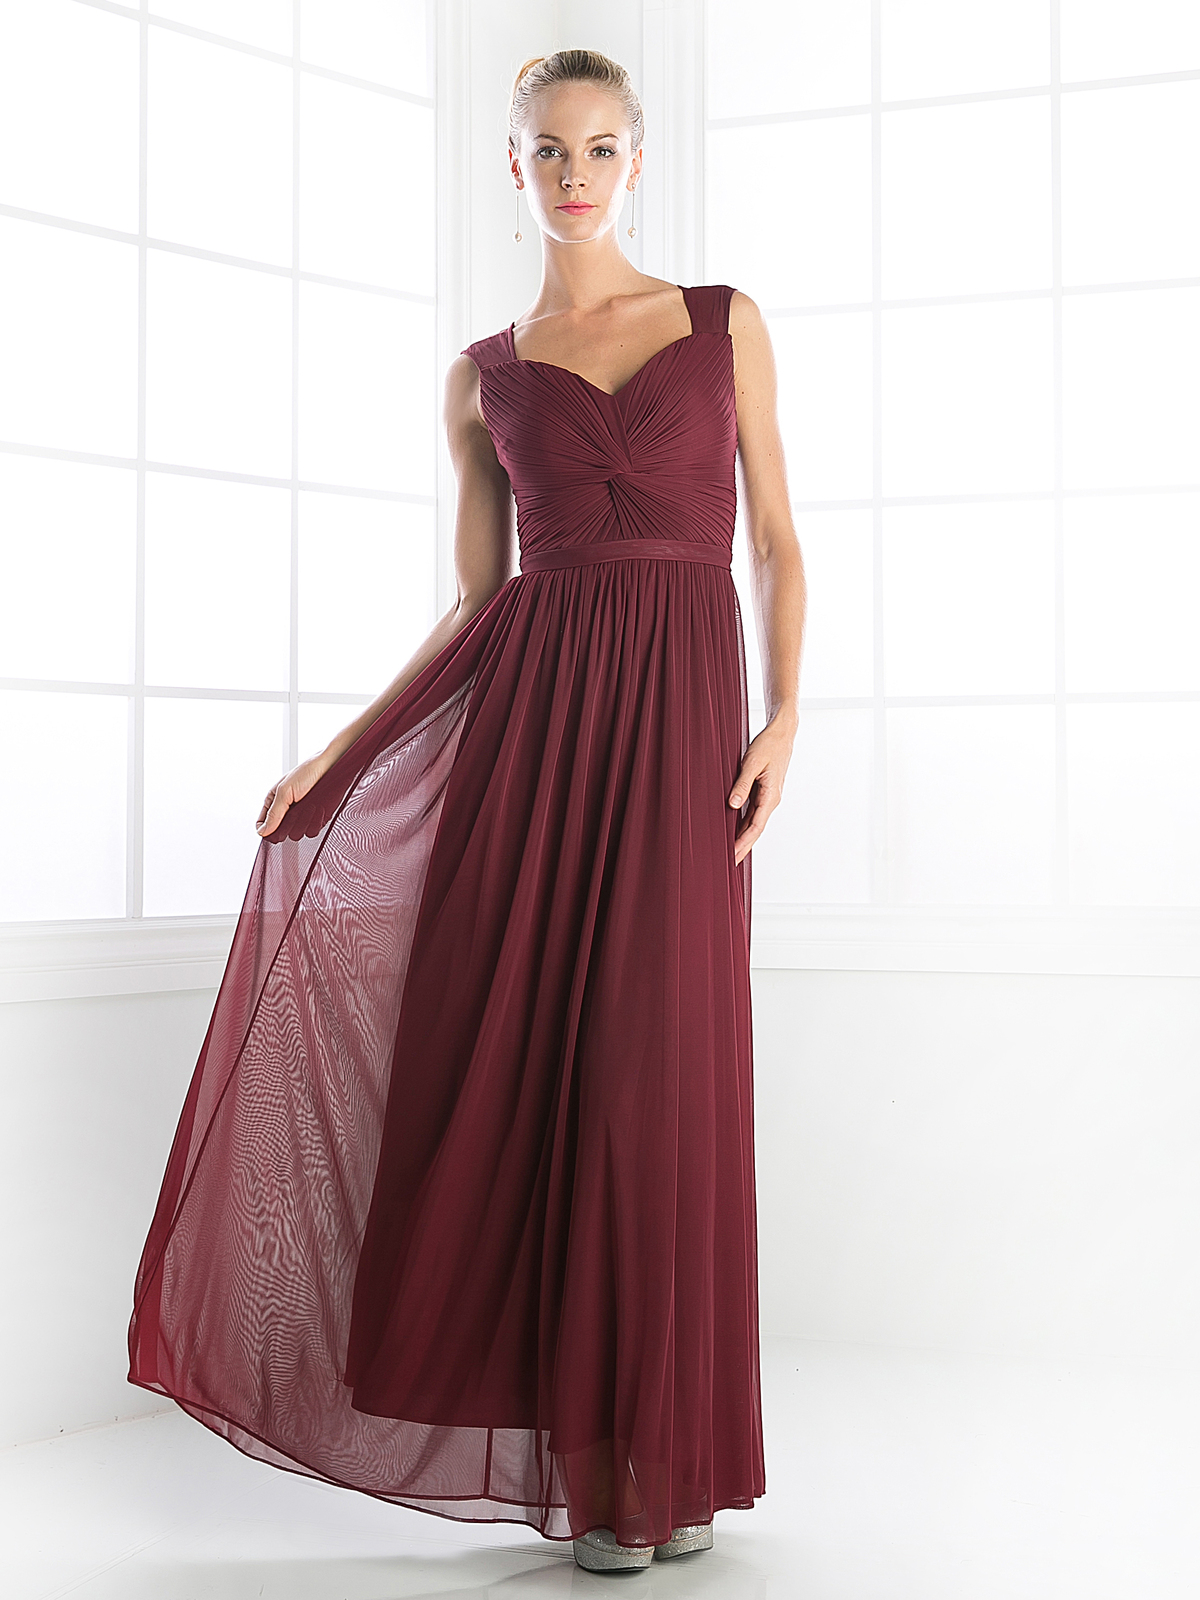 Sleeveless twisted front long bridesmaid dress sung boutique la cd 3858 sleeveless twisted front long bridesmaid dress burgundy front view medium ombrellifo Choice Image